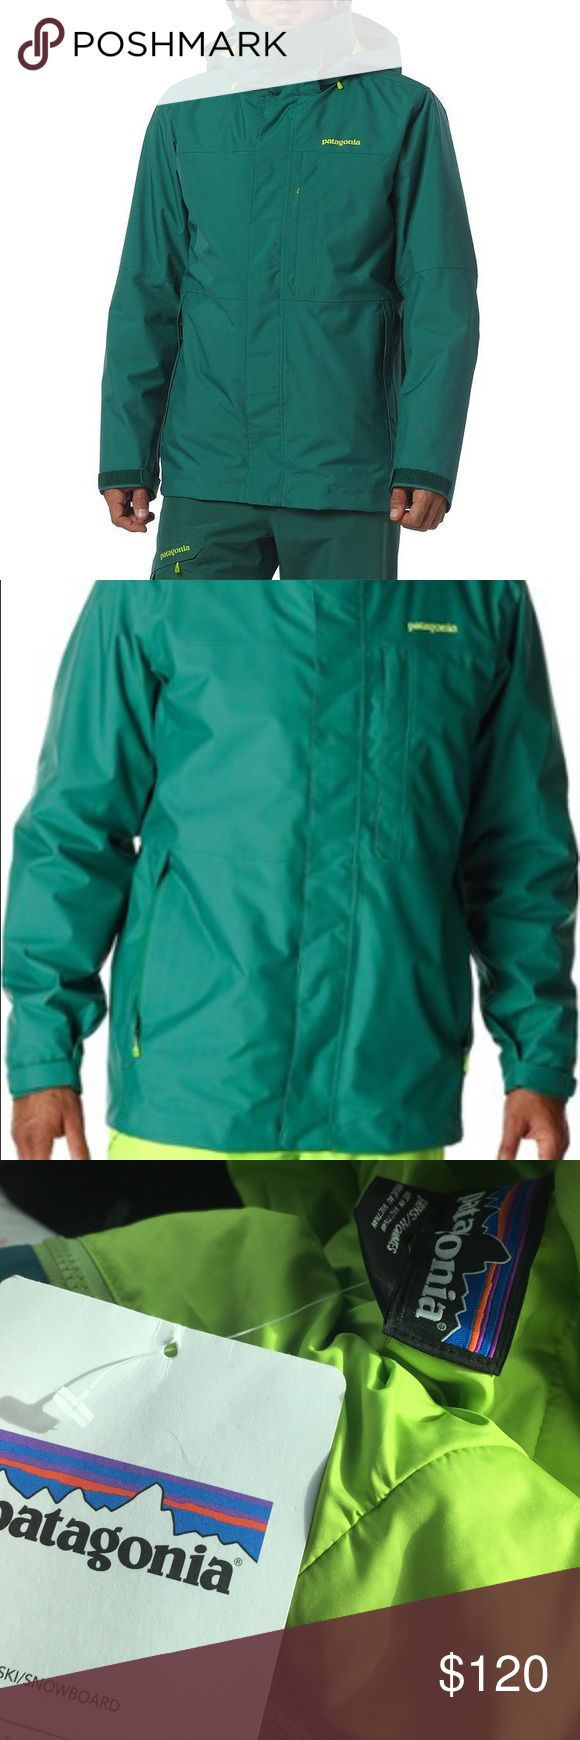 NWT Patagonia Men's Ski Snowboarding Jacket Awesome new with tags Patagonia snowboarding jacket. Arbor green Patagonia with waterproof technology. Size men's small in new condition with tags attached Patagonia Jackets & Coats Ski & Snowboard